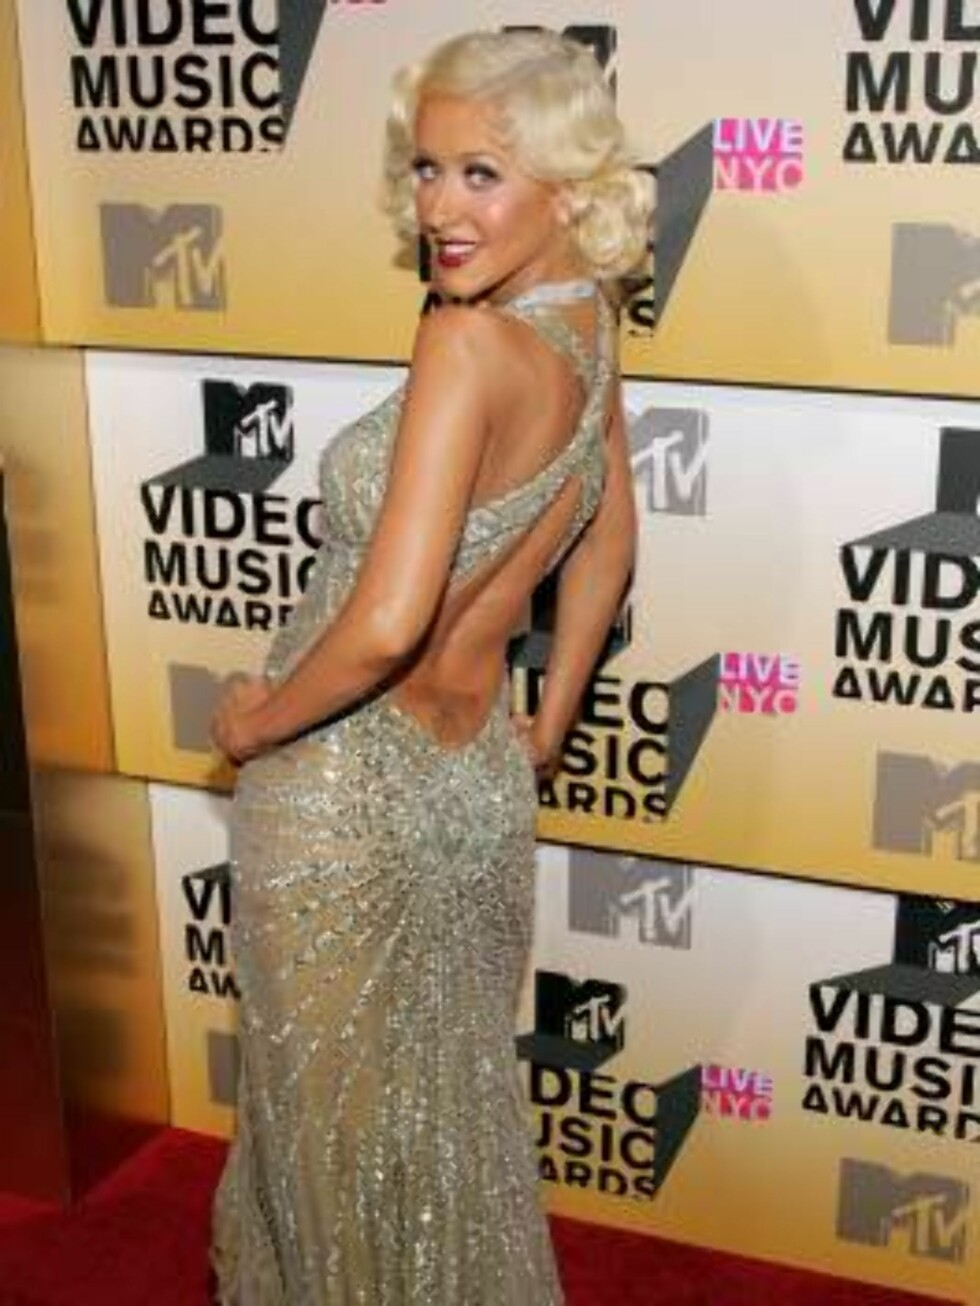 NEW YORK - AUGUST 31:  Singer Christina Aguilera attends the 2006 MTV Video Music Awards at Radio City Music Hall August 31, 2006 in New York City.  (Photo by Bryan Bedder/Getty Images) *** Local Caption *** Christina Aguilera  * SPECIAL INSTRUCTIONS:  * Foto: All Over Press